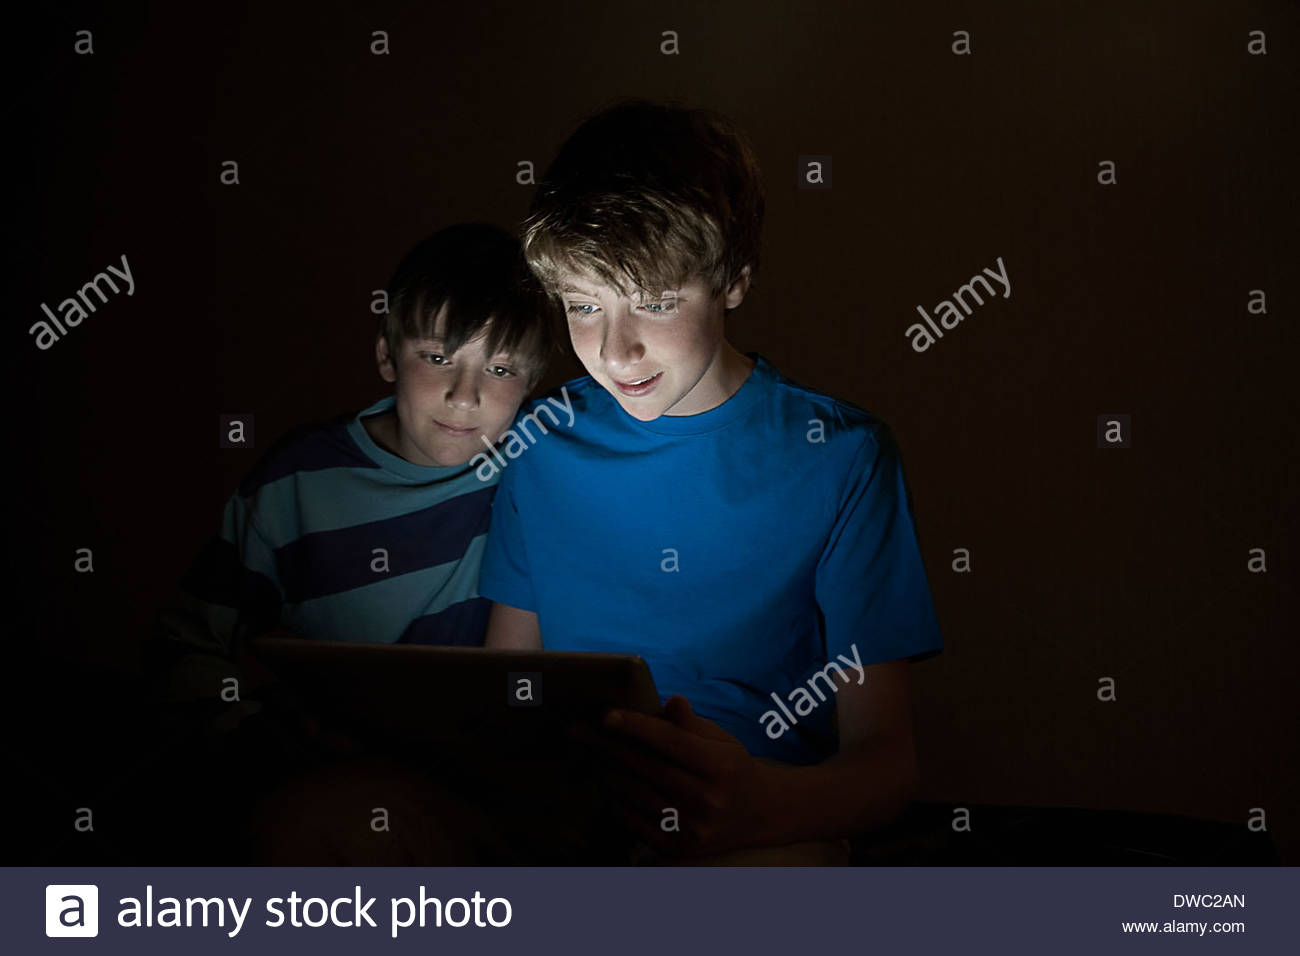 Teenage boy and brother looking at digital tablet at night - Stock Image